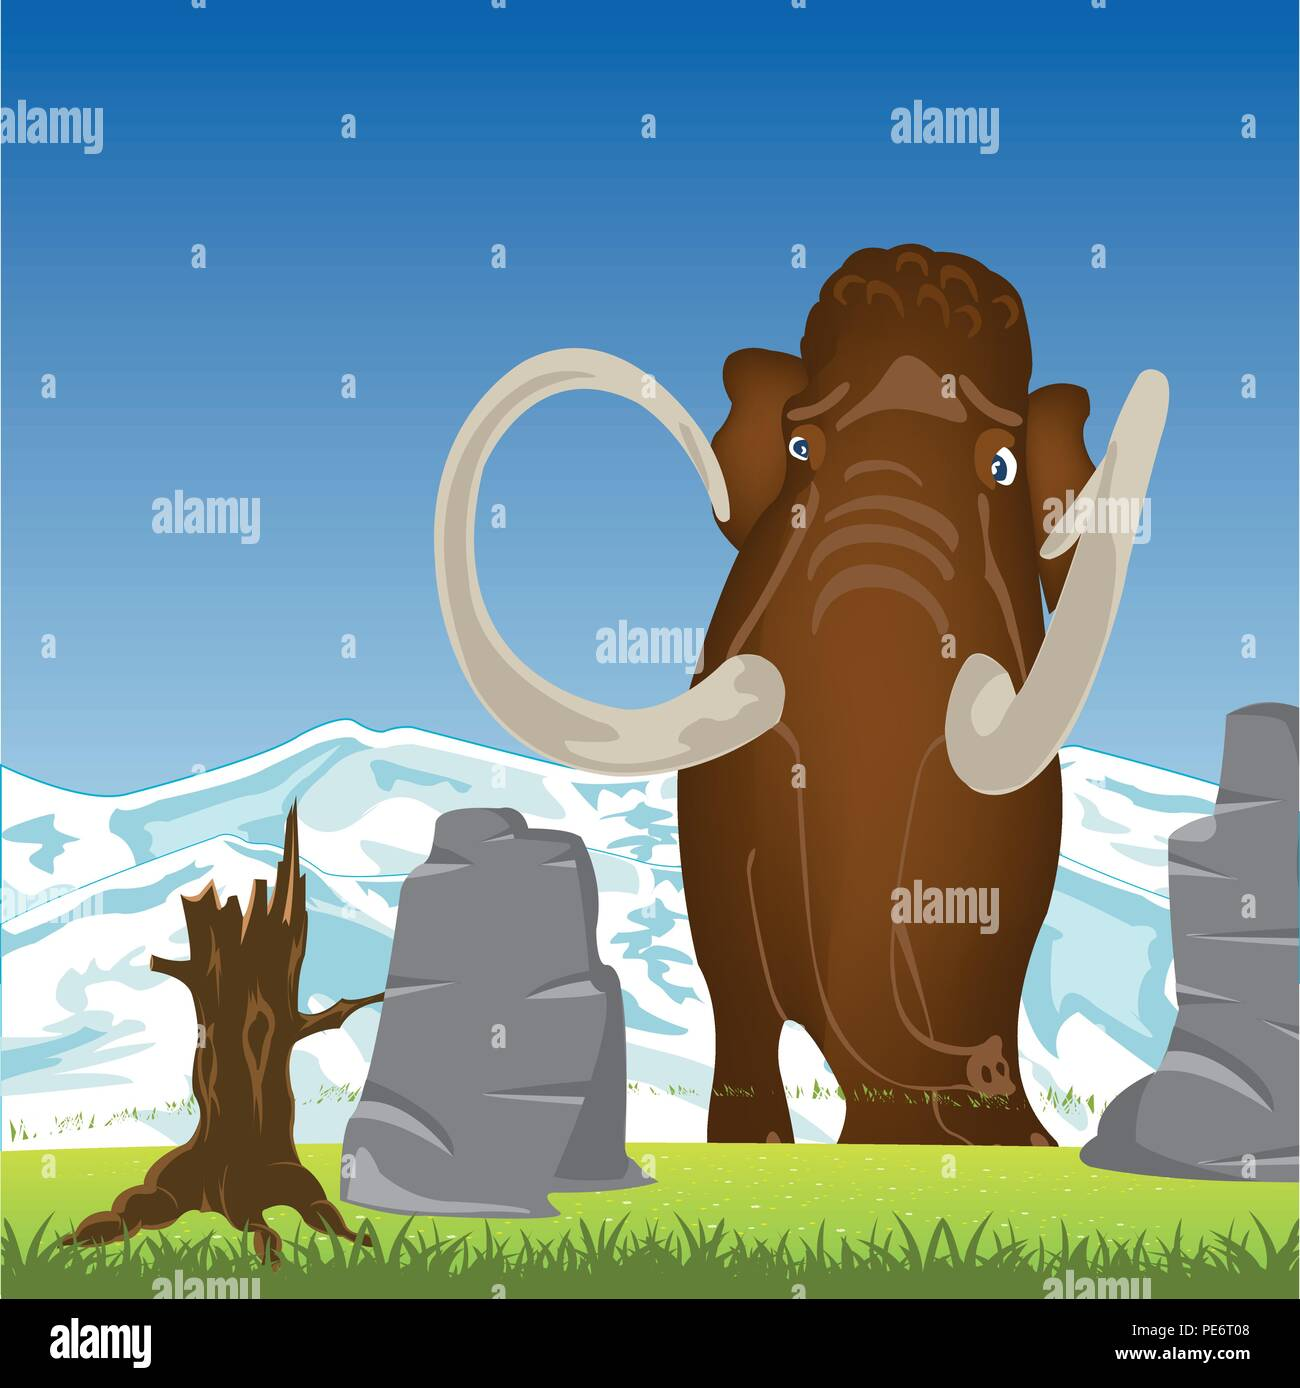 Mammoth on glade.Prehistorical animal mammoth on green glade - Stock Image